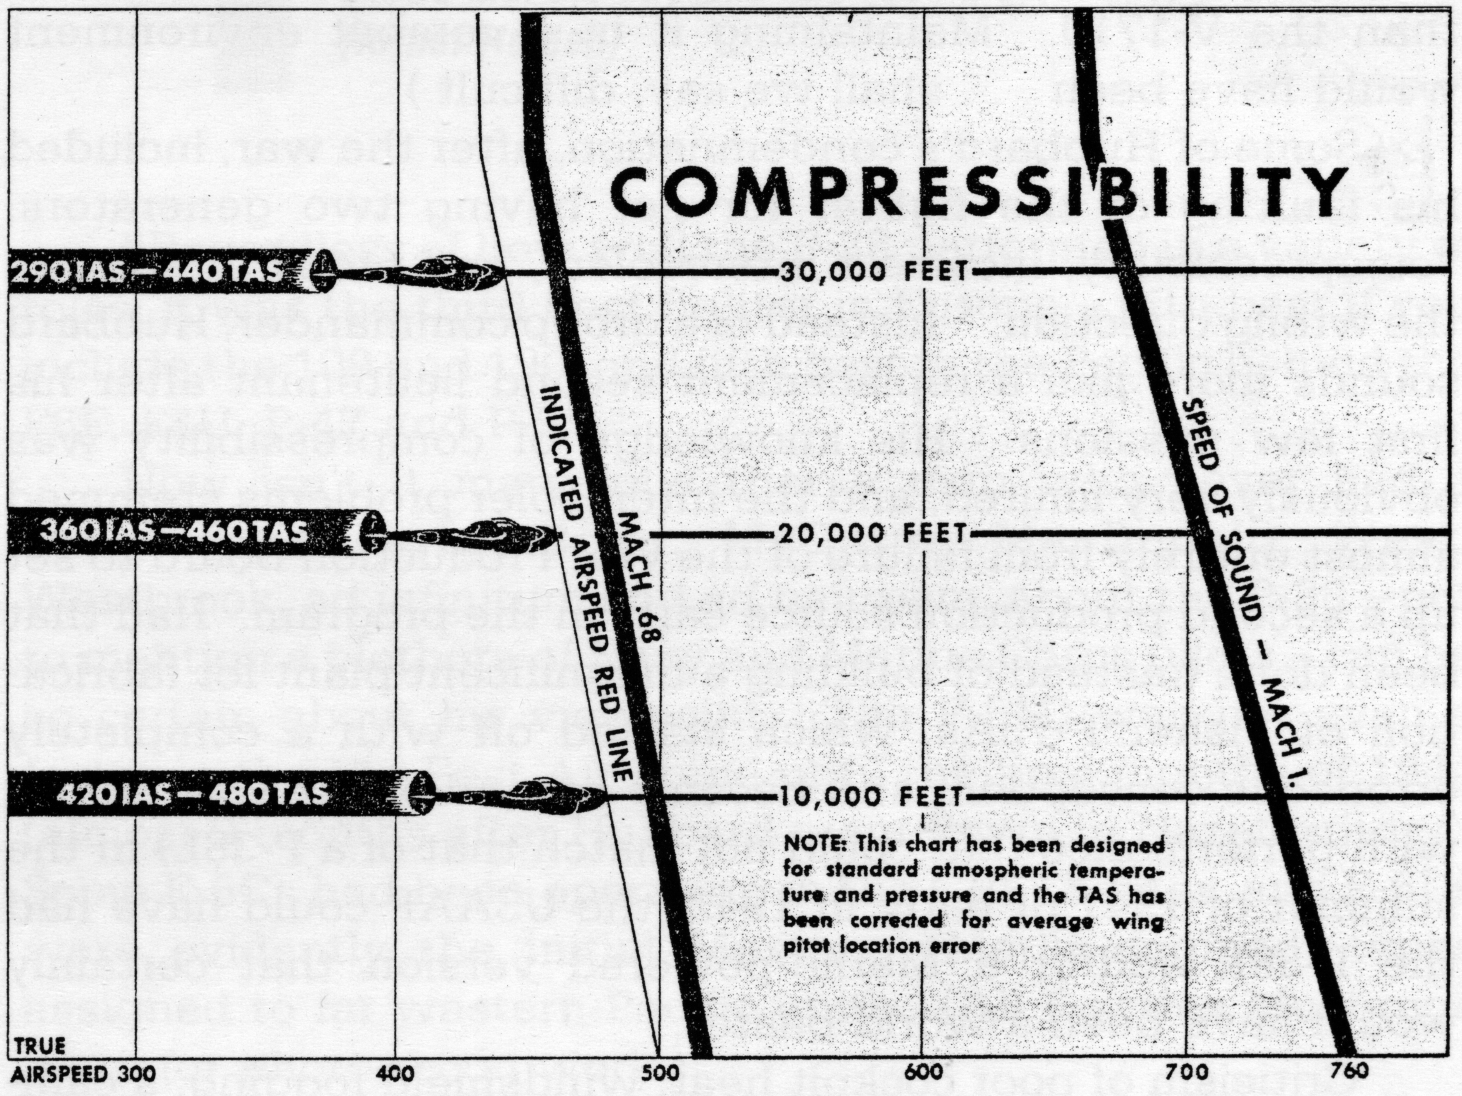 Lockheed P 38 Lightning Wikipedia Basic Experimental Aircraft Wiring Diagram Pilot Training Manual Compressibility Chart Shows Speed Limit Vs Altitude